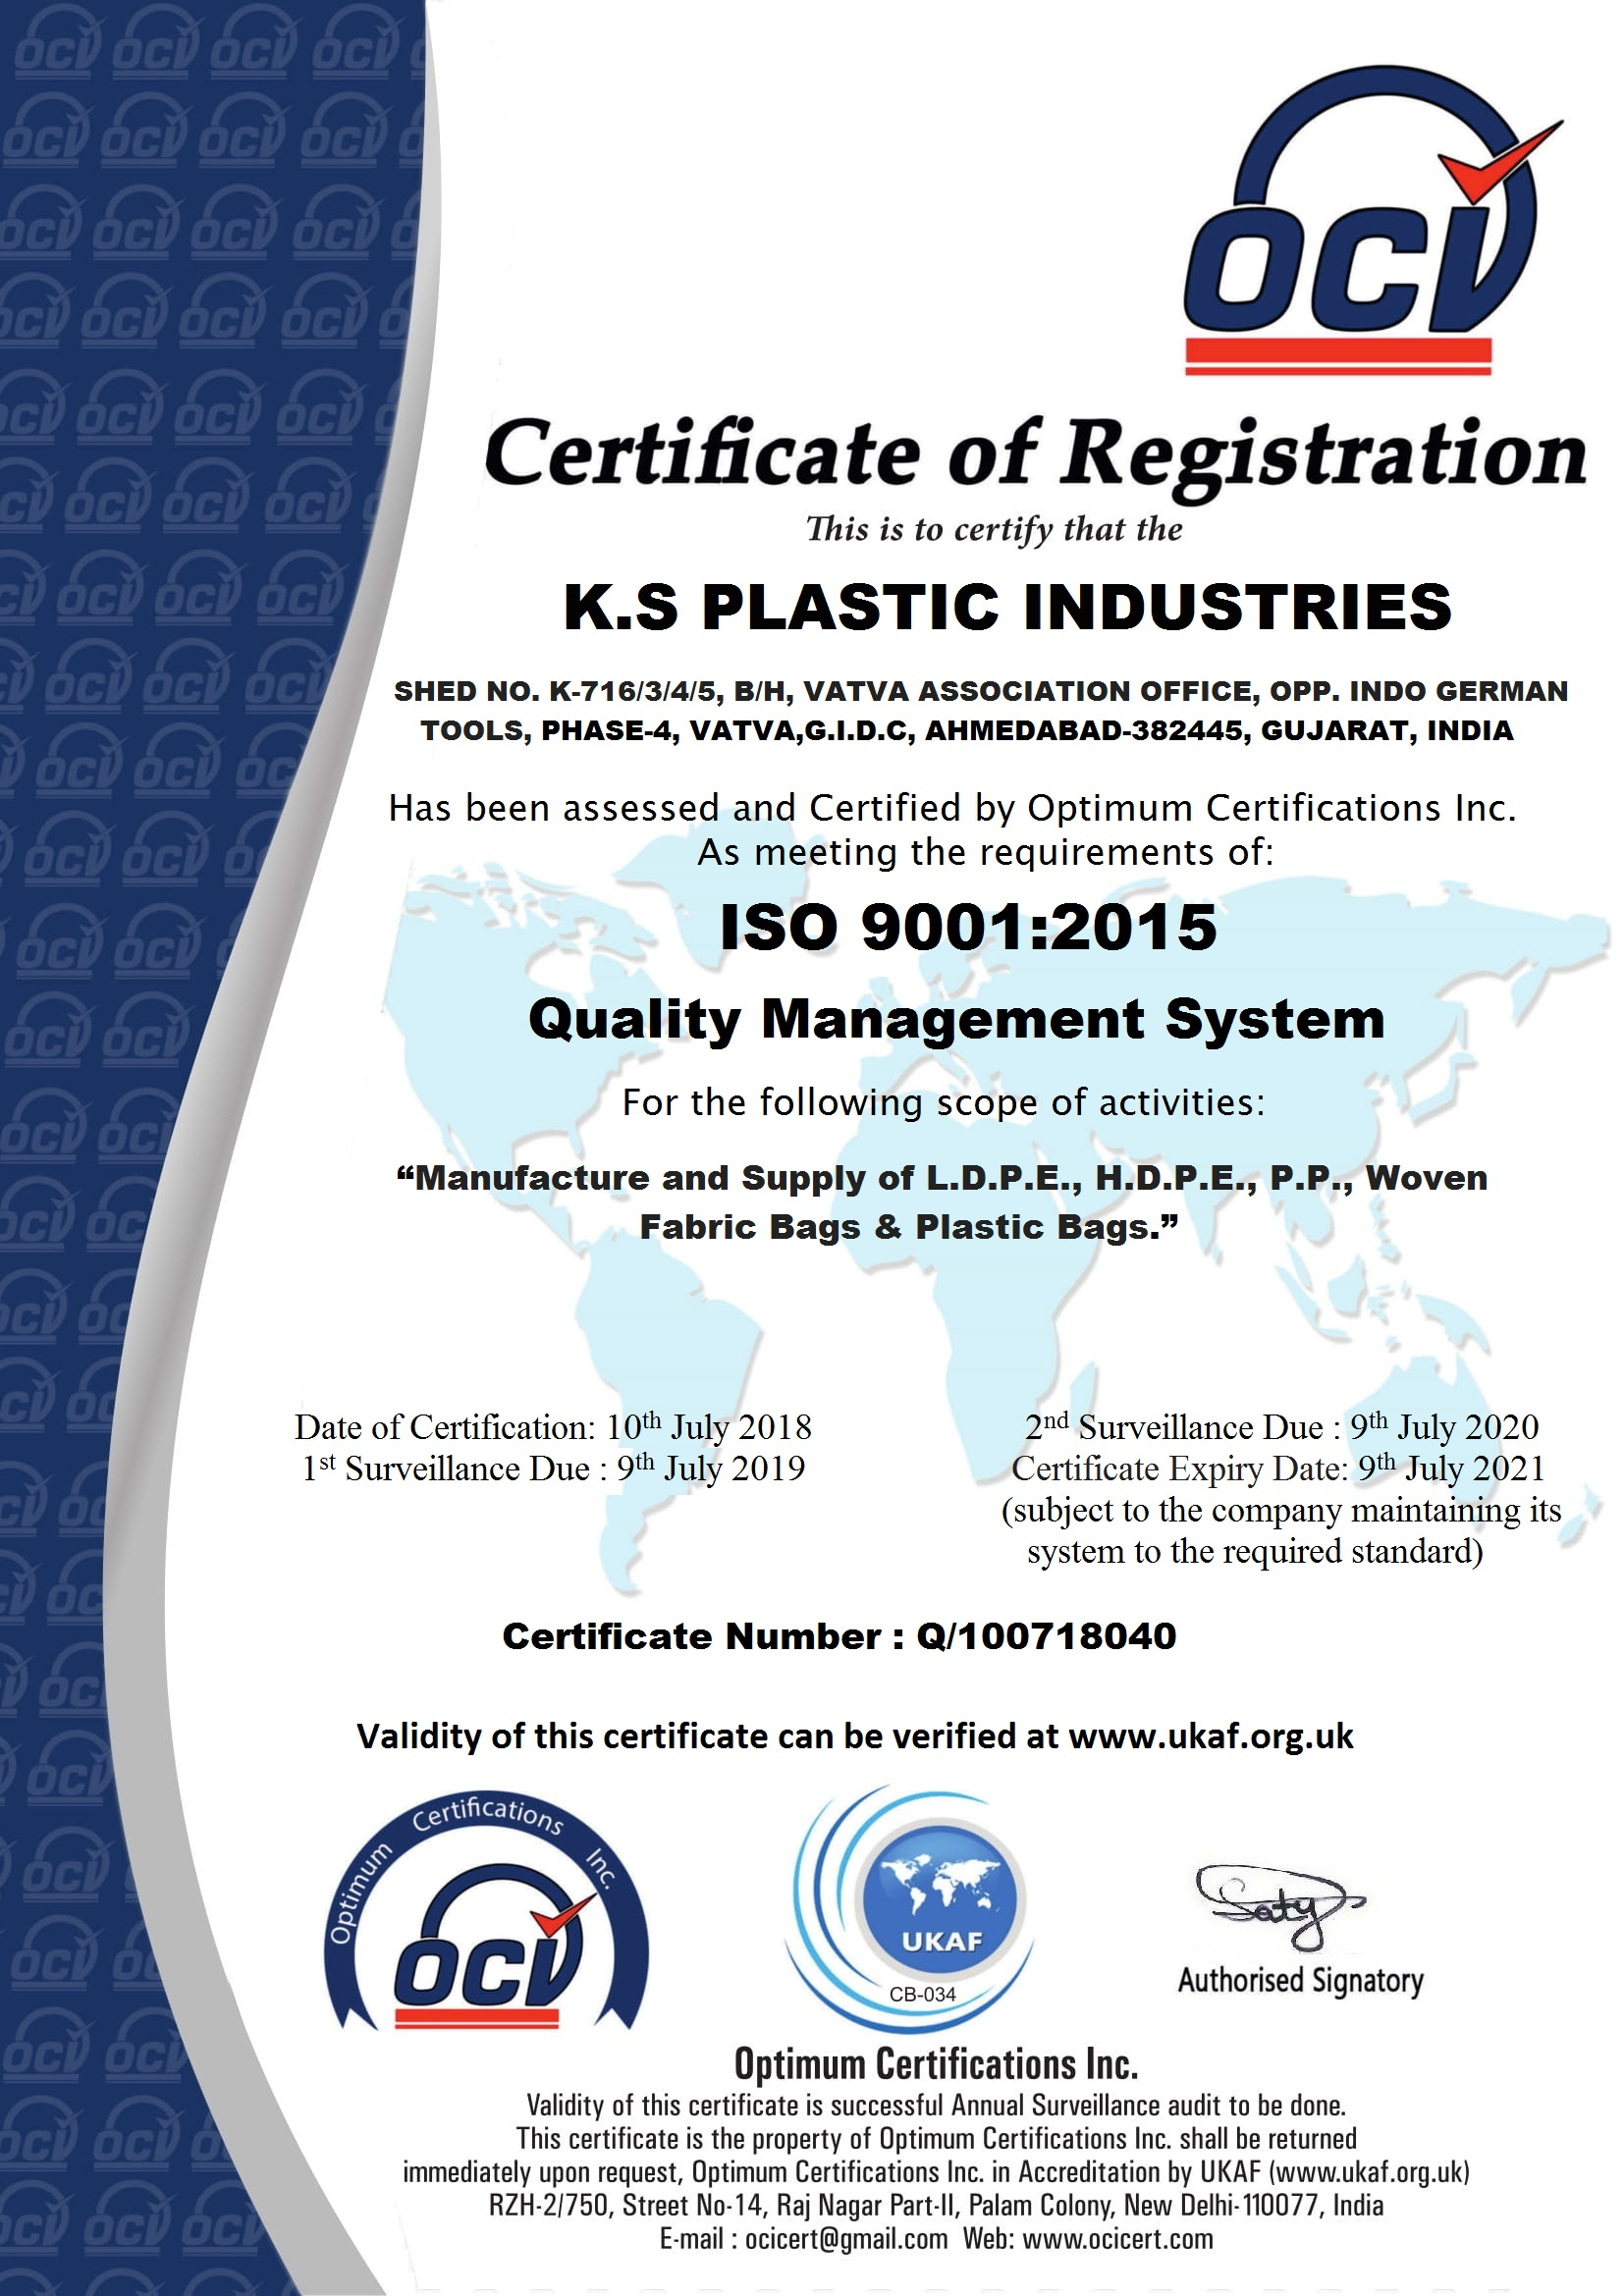 woven bags manufactured by the K.S. Plastic Plastic Industries